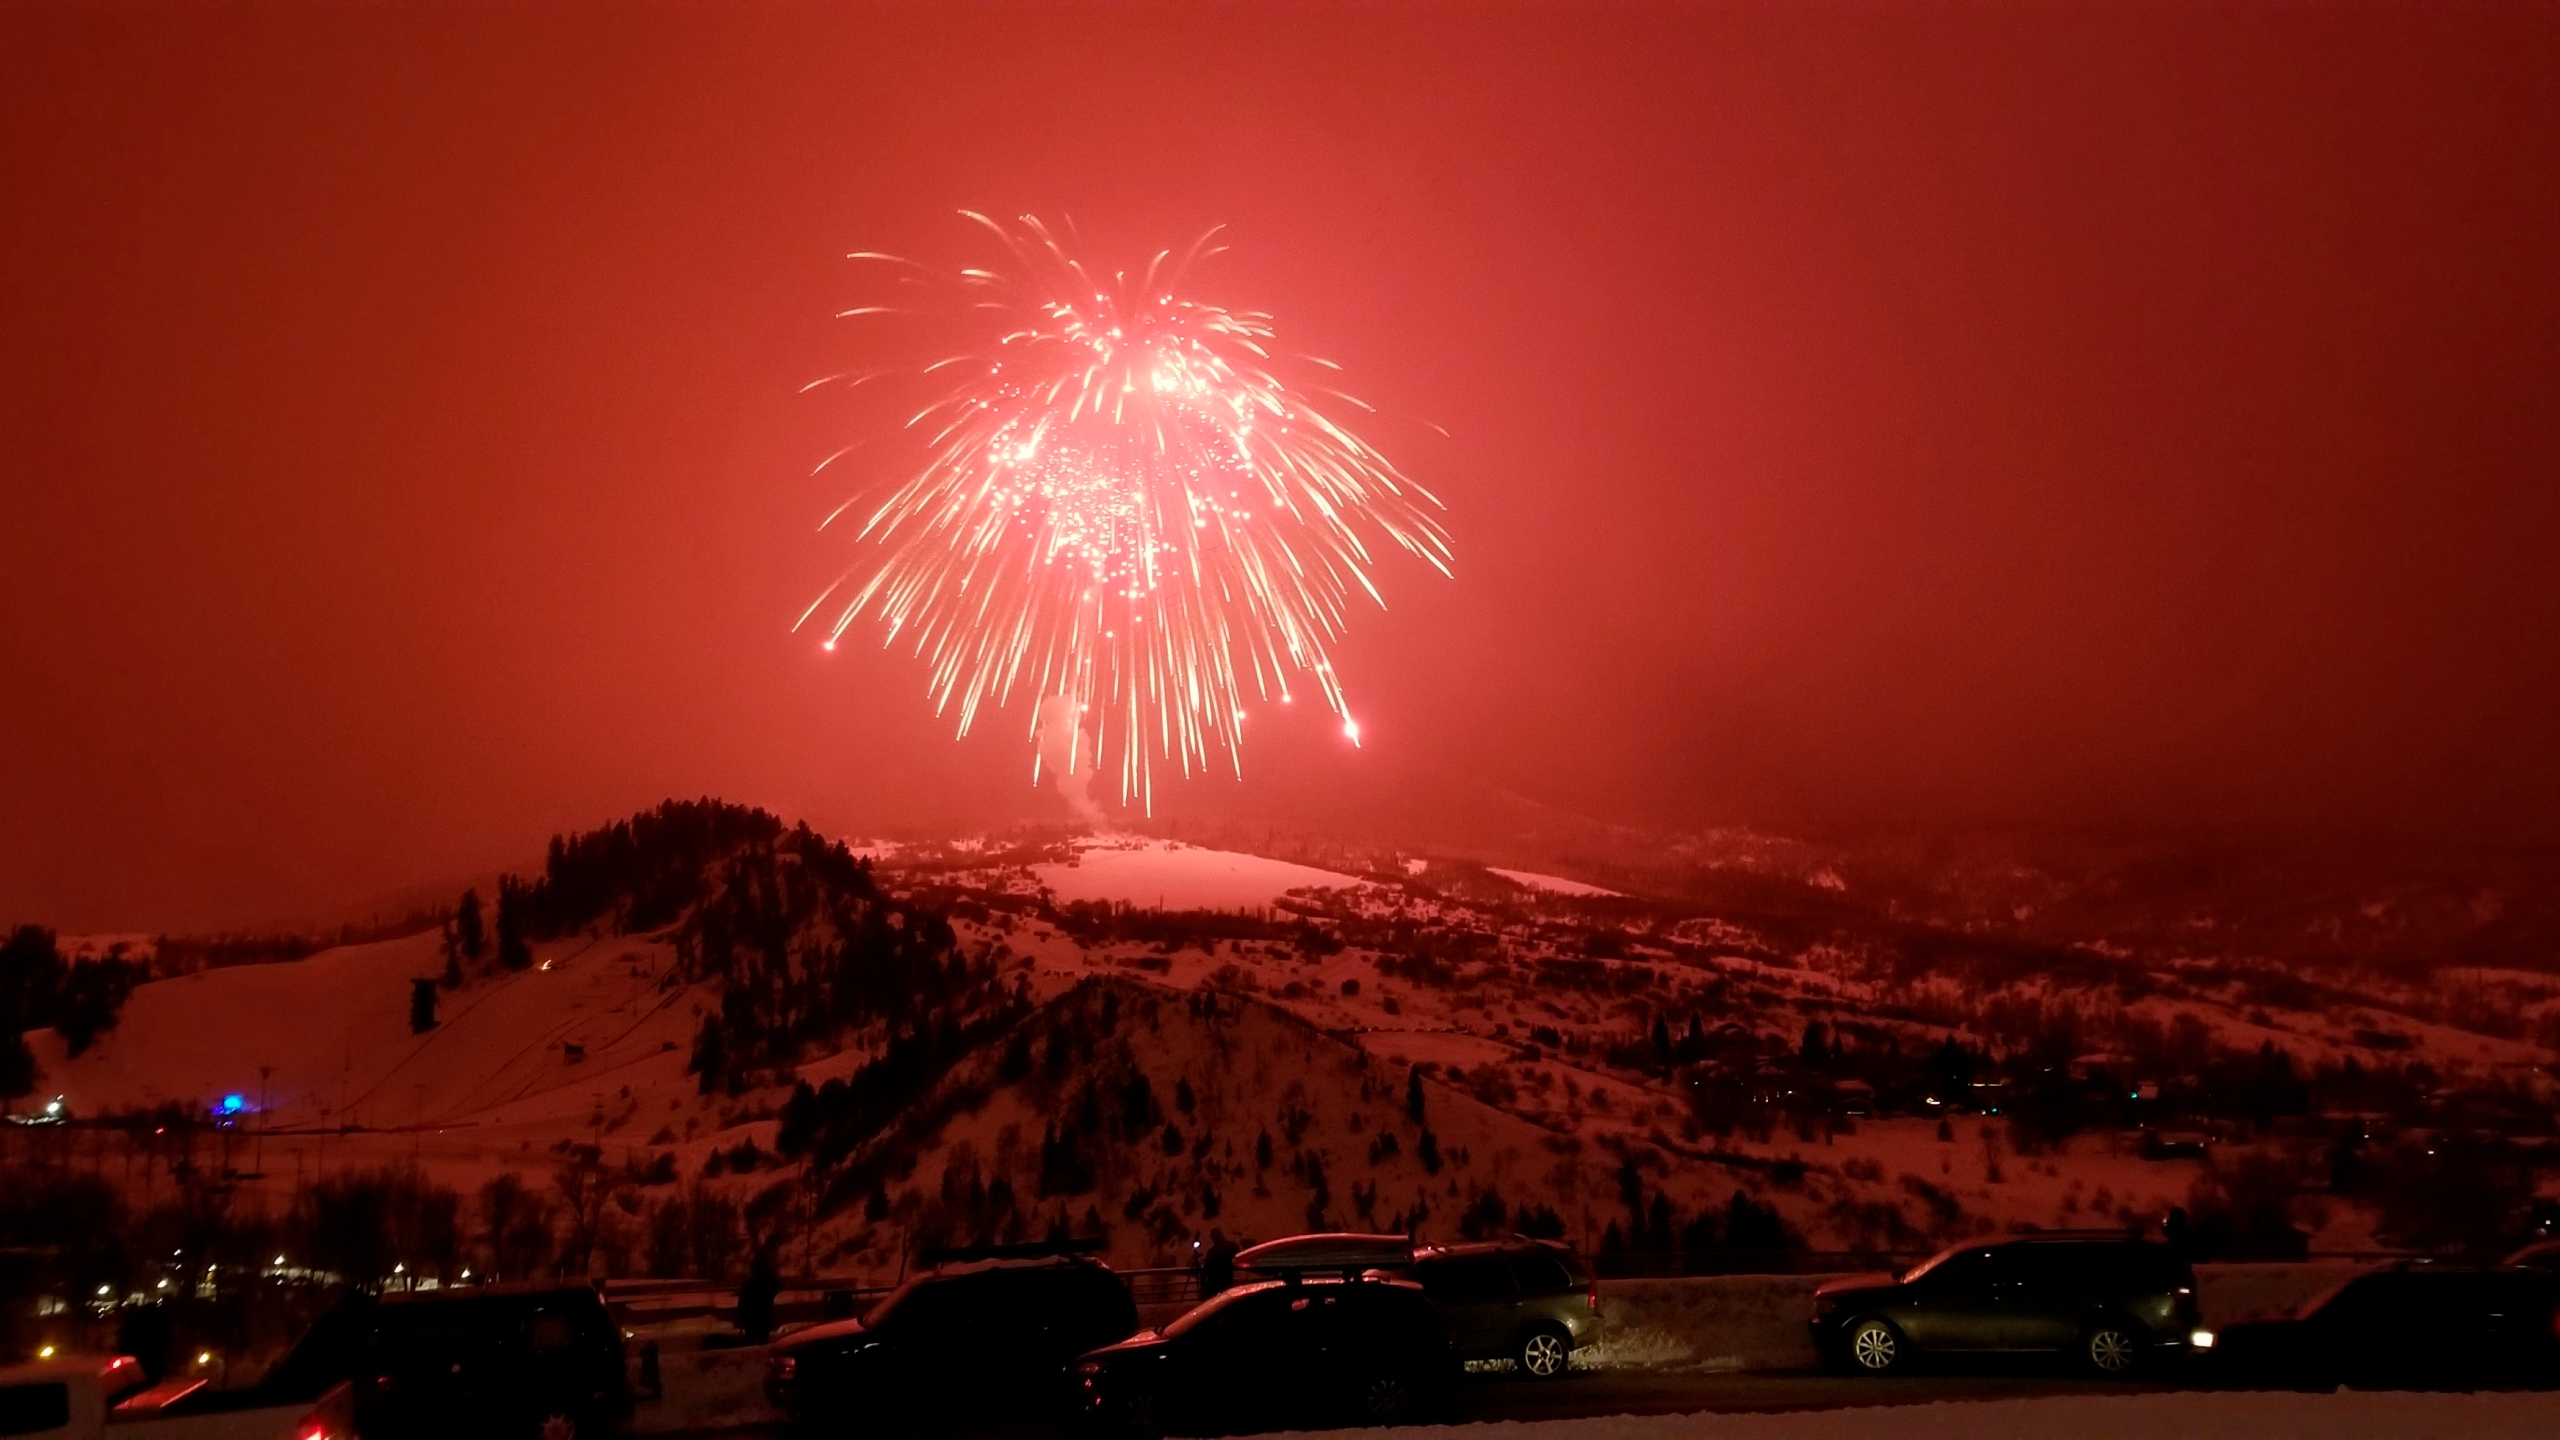 In this Saturday, Feb. 8, 2020 photo, a firework launched over Colorado ski resort town of Steamboat Springs explodes Saturday, Feb. 8, 2020. (AP Photo/Steve Caulk)